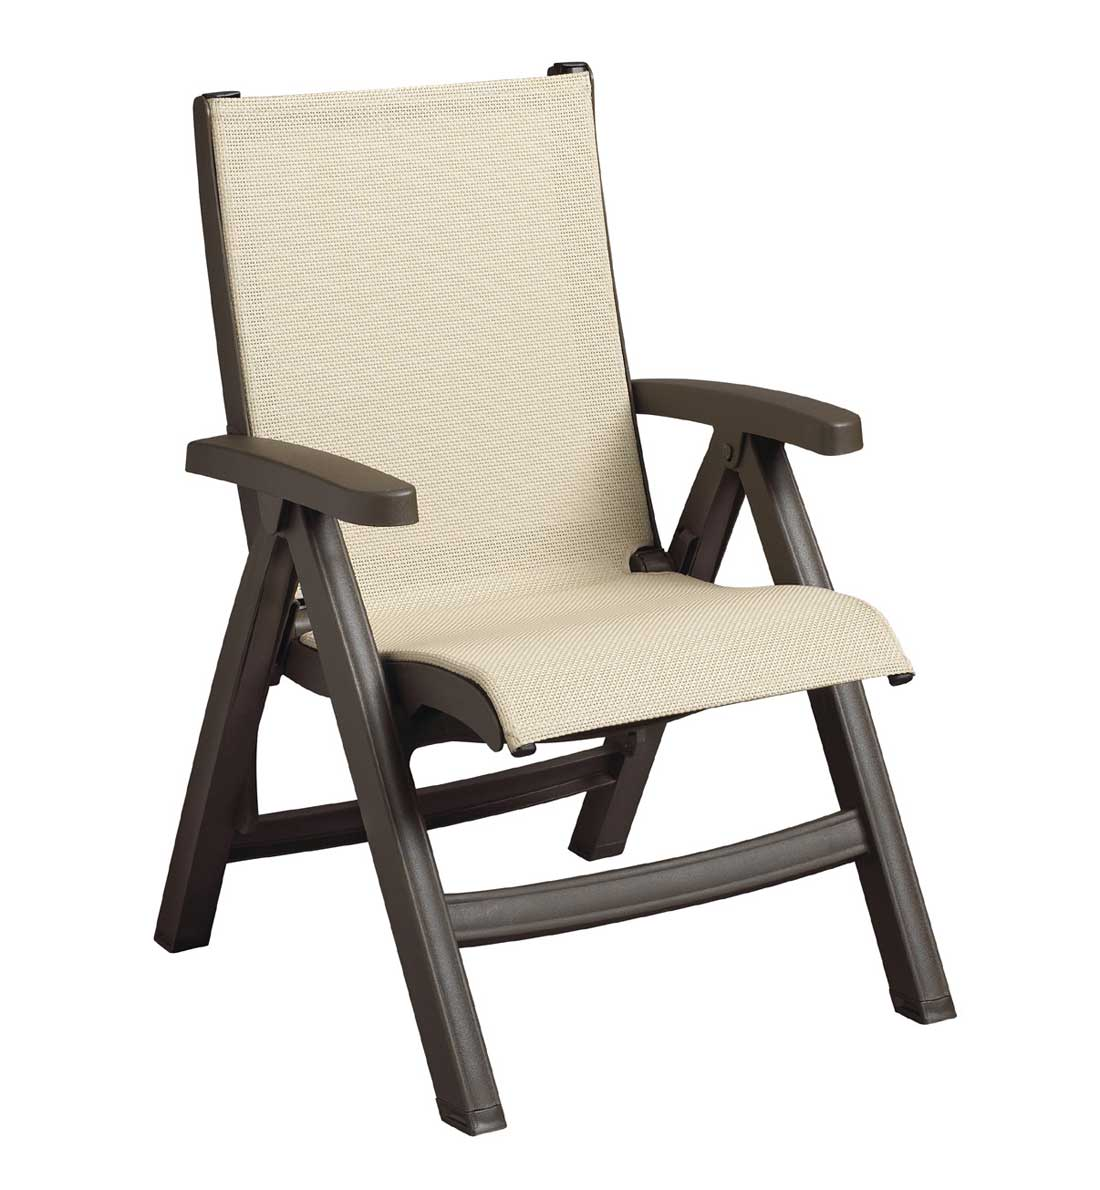 Gallery Of Lawn Patio Chairs